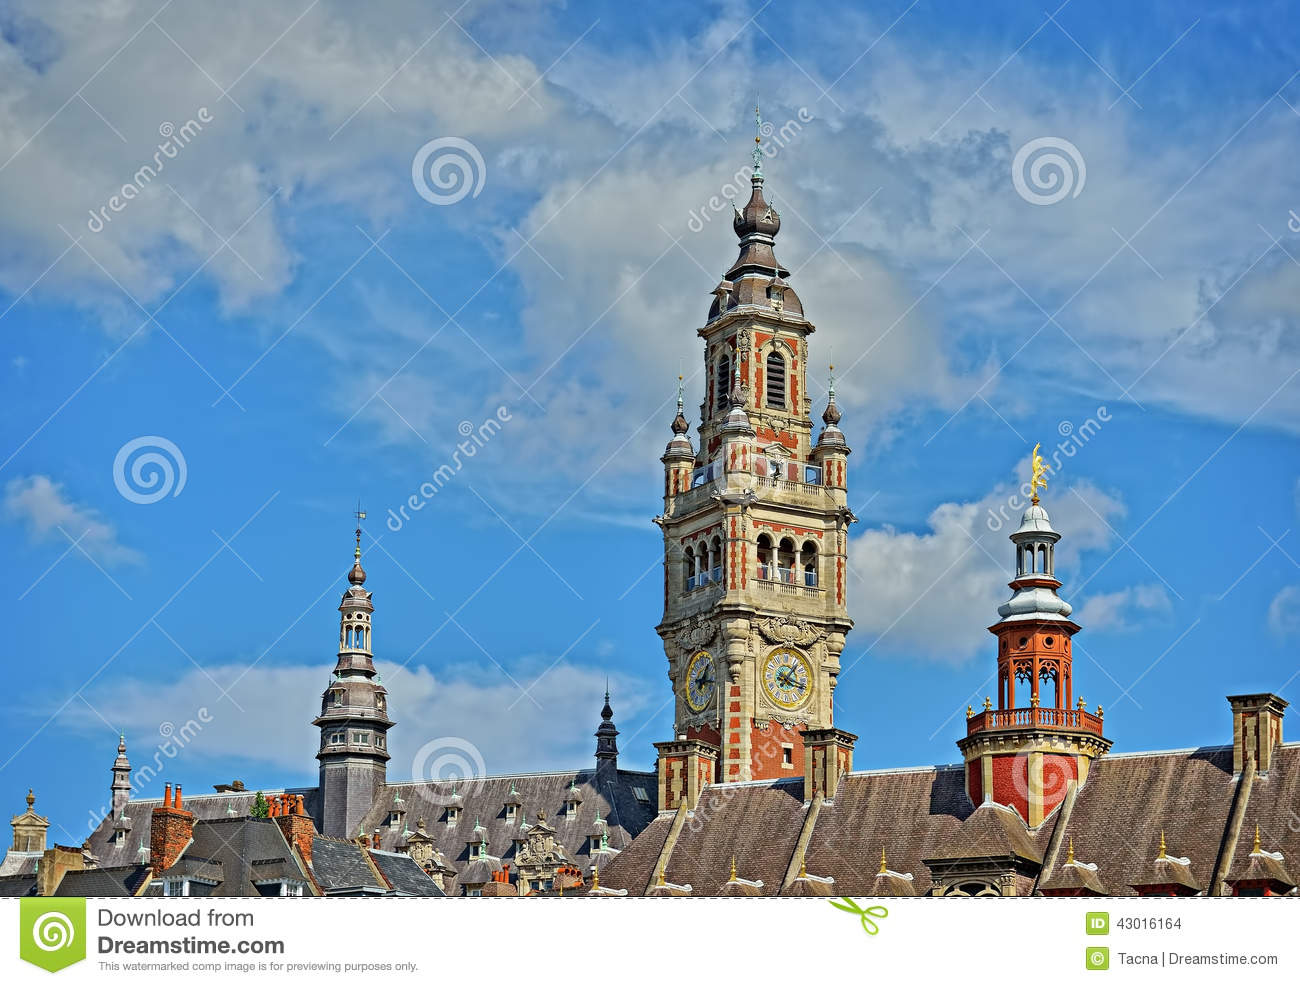 Chamber of commerce of city lille france stock photo for Chamber of commerce france